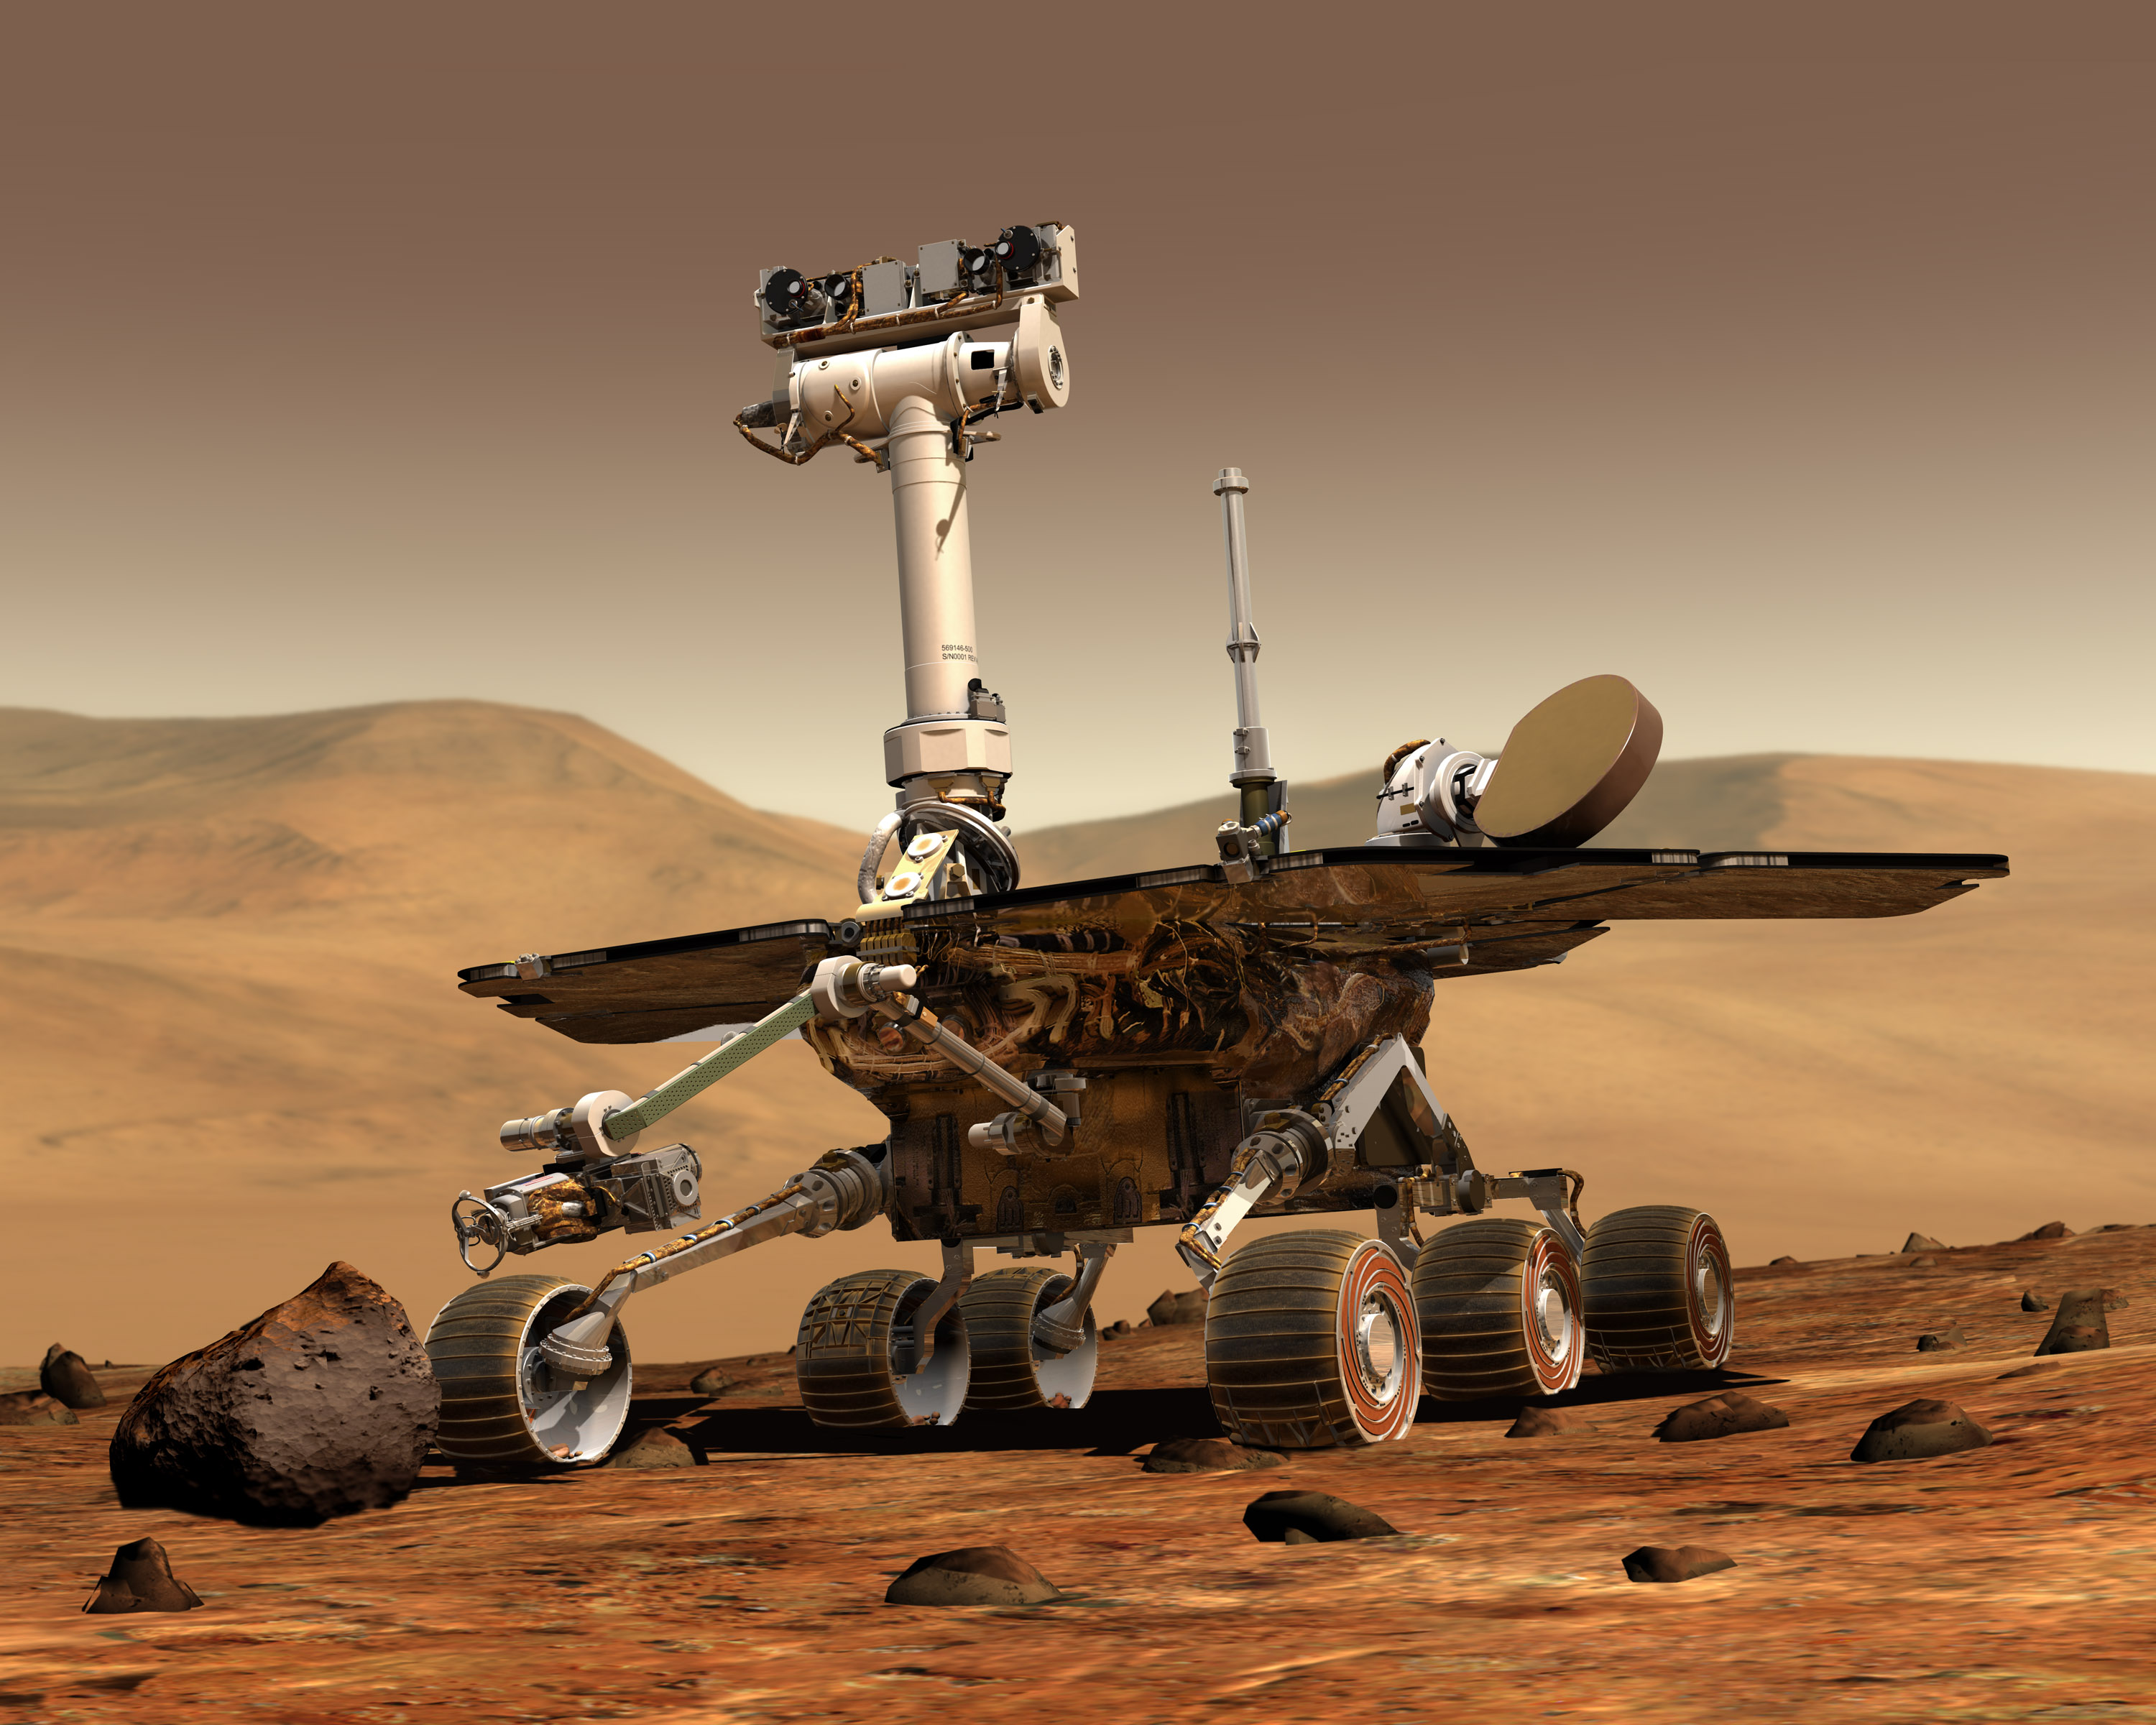 NASA makes last attempts to communicate with Opportunity rover on Mars